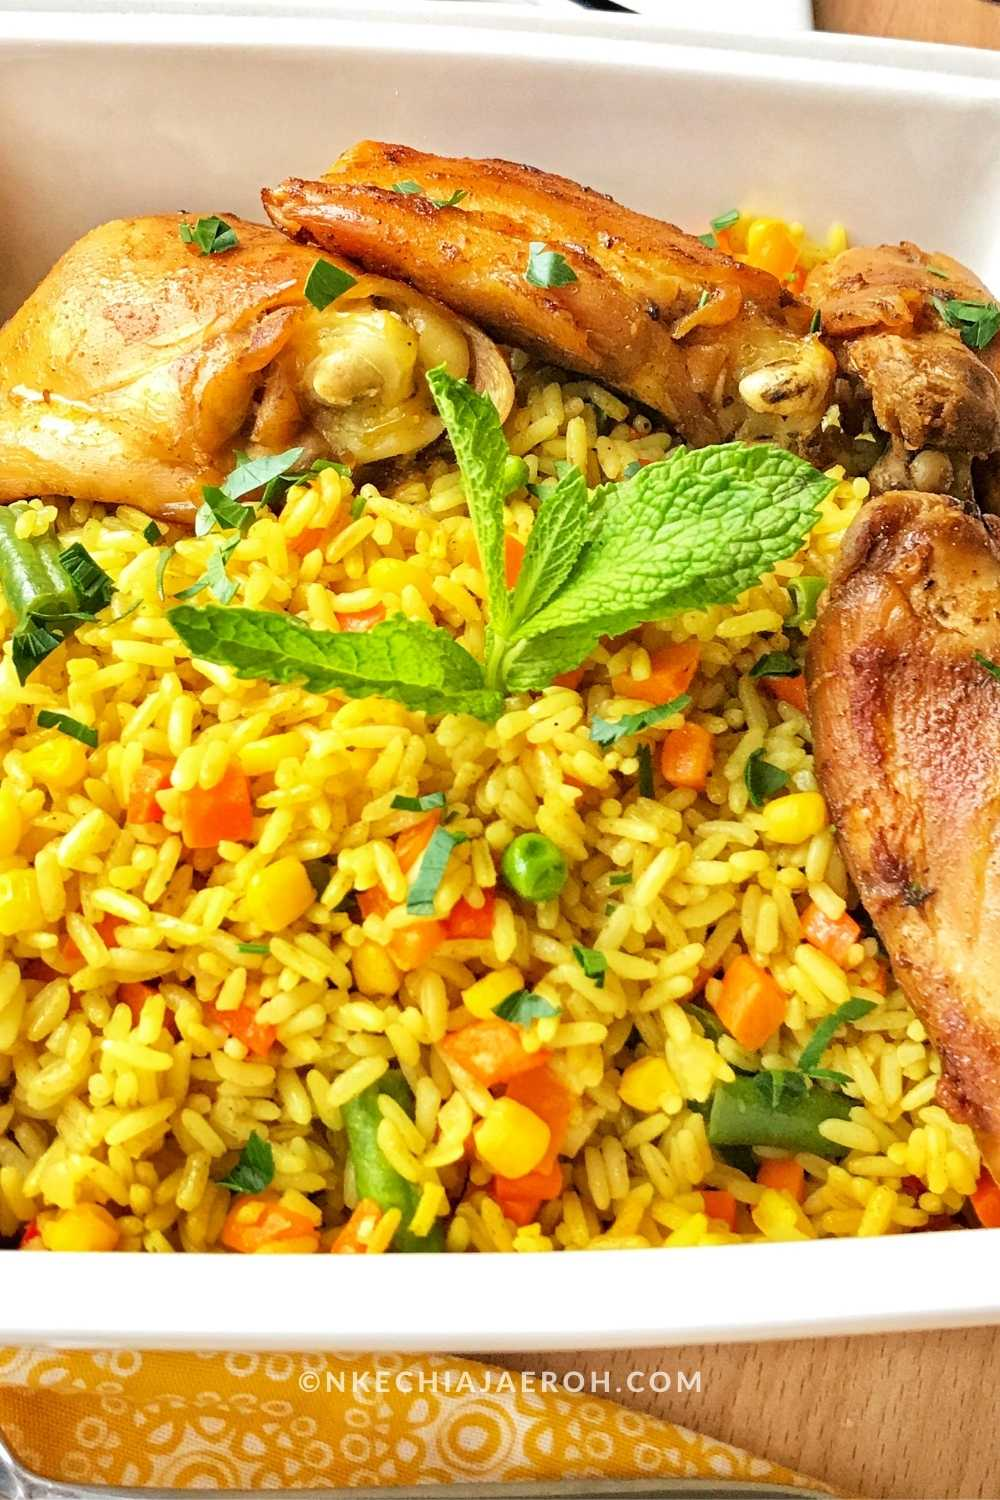 How to make Healthier and Easier Nigerian Fried Rice Recipe Nigerian fried rice is one of the best exports out of Africa. It is perfectly okay to call this recipe West African fried rice because we generally cook fried the same way across West Africa – Nigeria, Ghana, Cameroon, Togo, Cotonou.